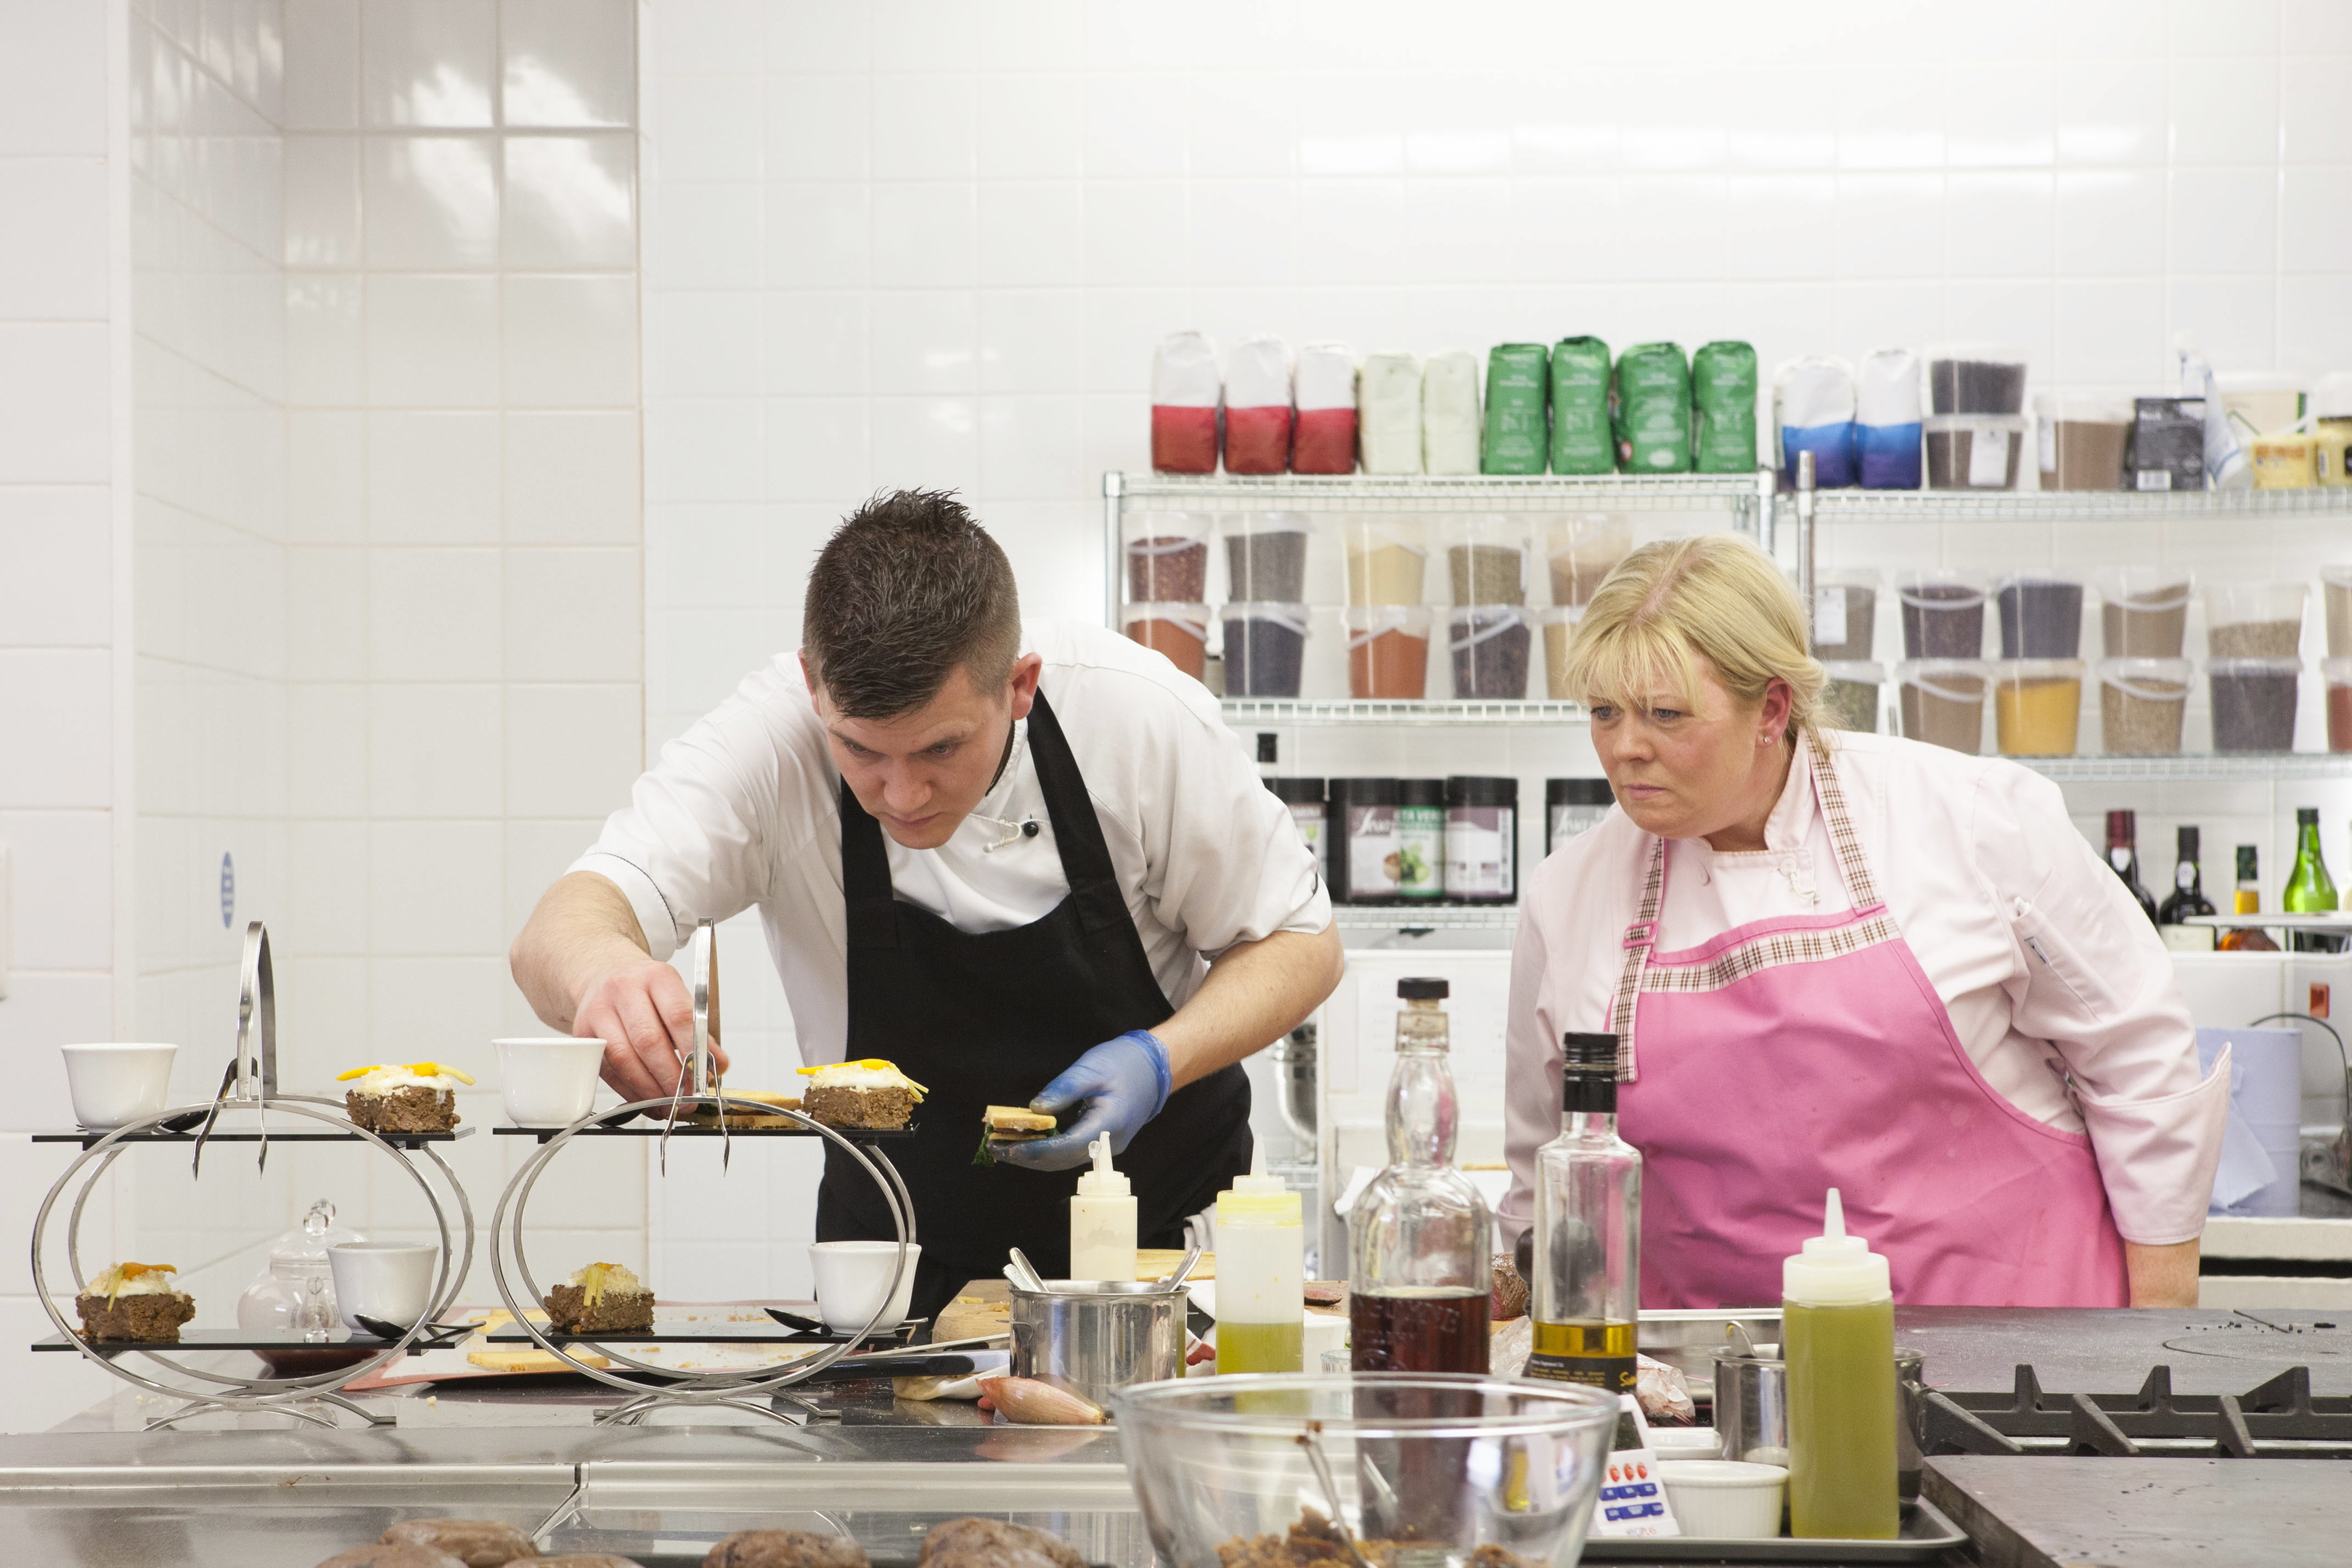 Chef Jak O'Donnell looks on as Graham plates up a dish.